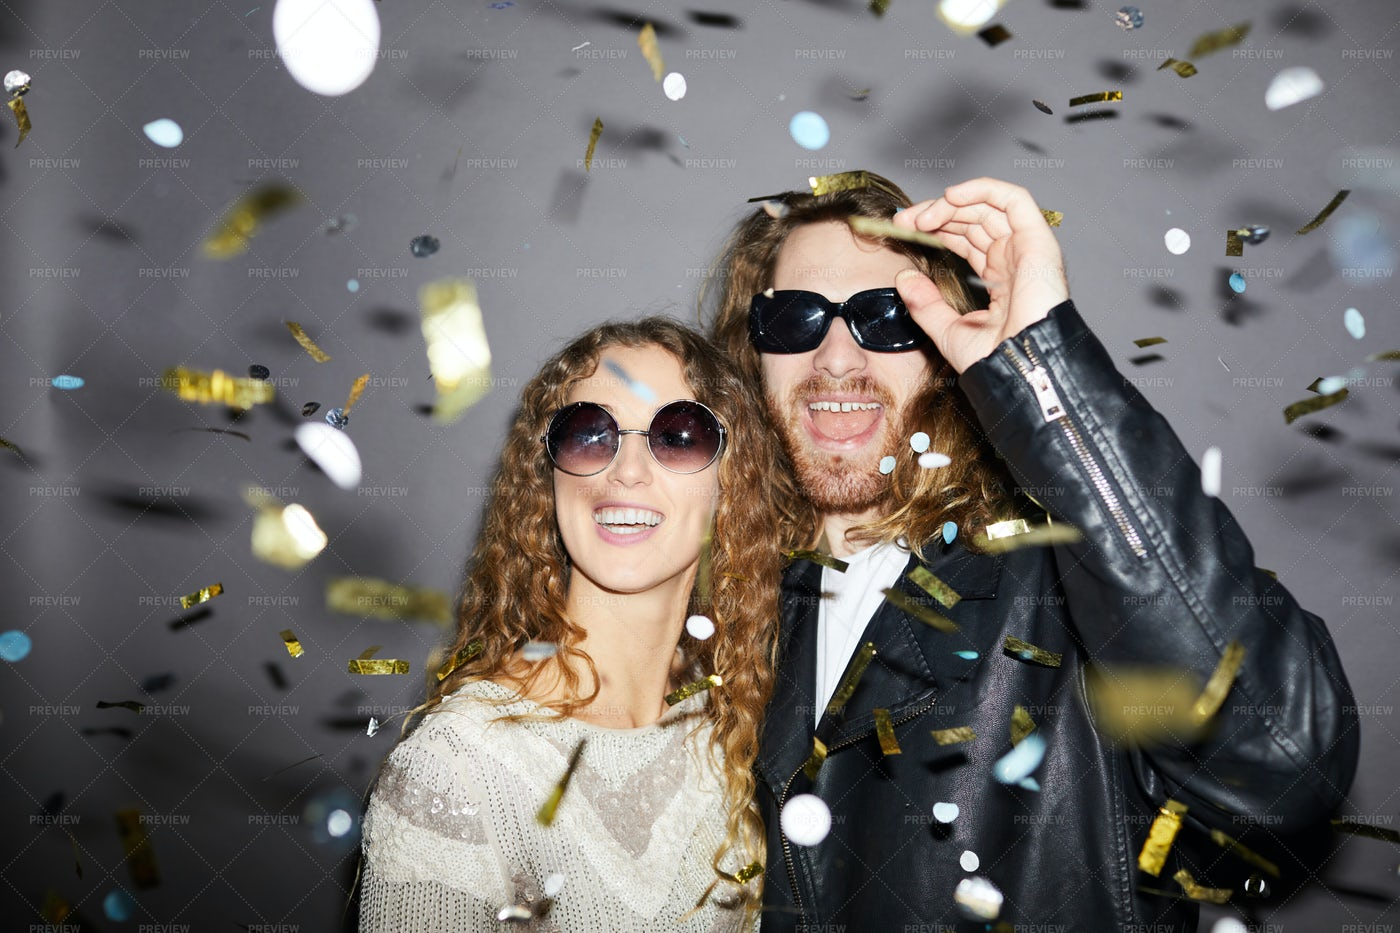 Excited Couple Under Golden...: Stock Photos